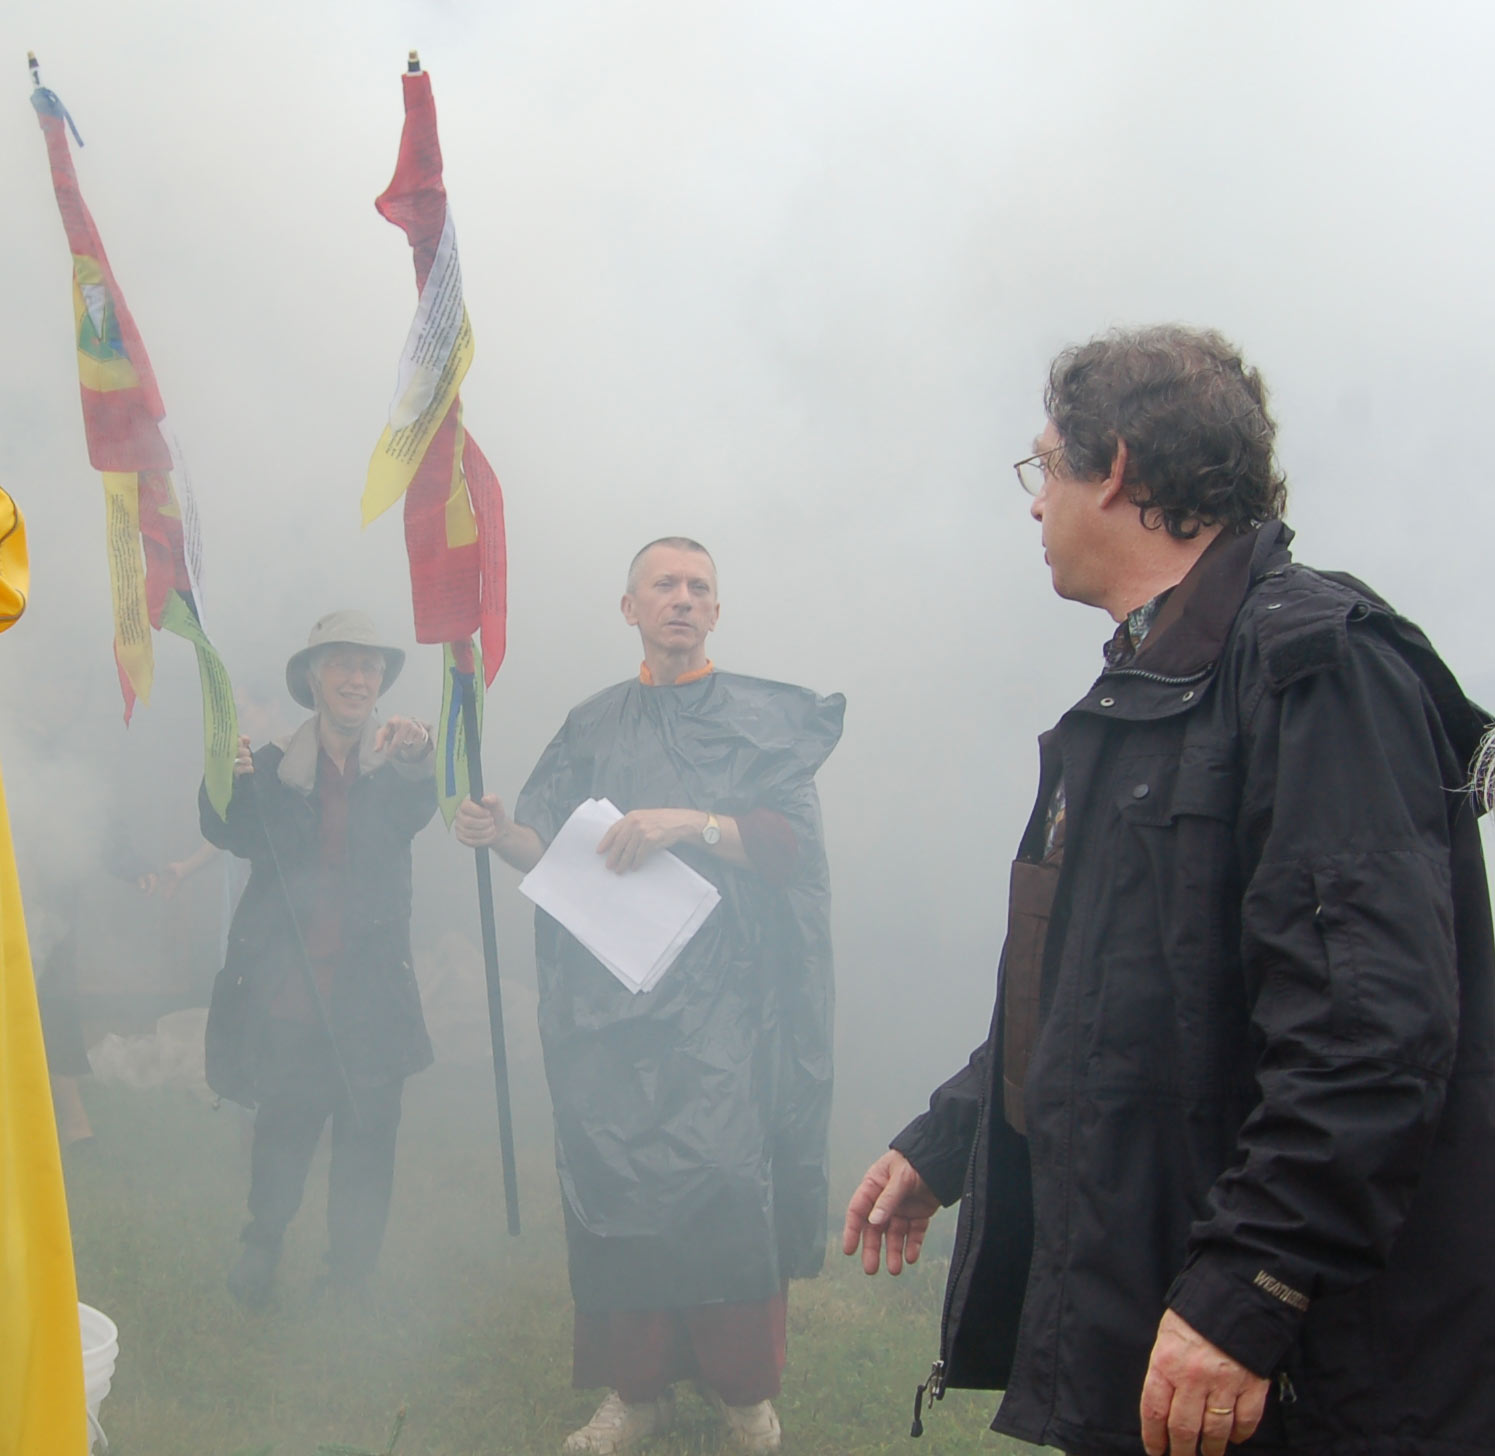 Acharya Larry Mermelstein is shown here in the white smoke of the lhasang, which was part of the gate opening and graduation celebration on Sunday, July 11th for eleven, three-year retreatants at Sopa Choling, Gampo Abbey.